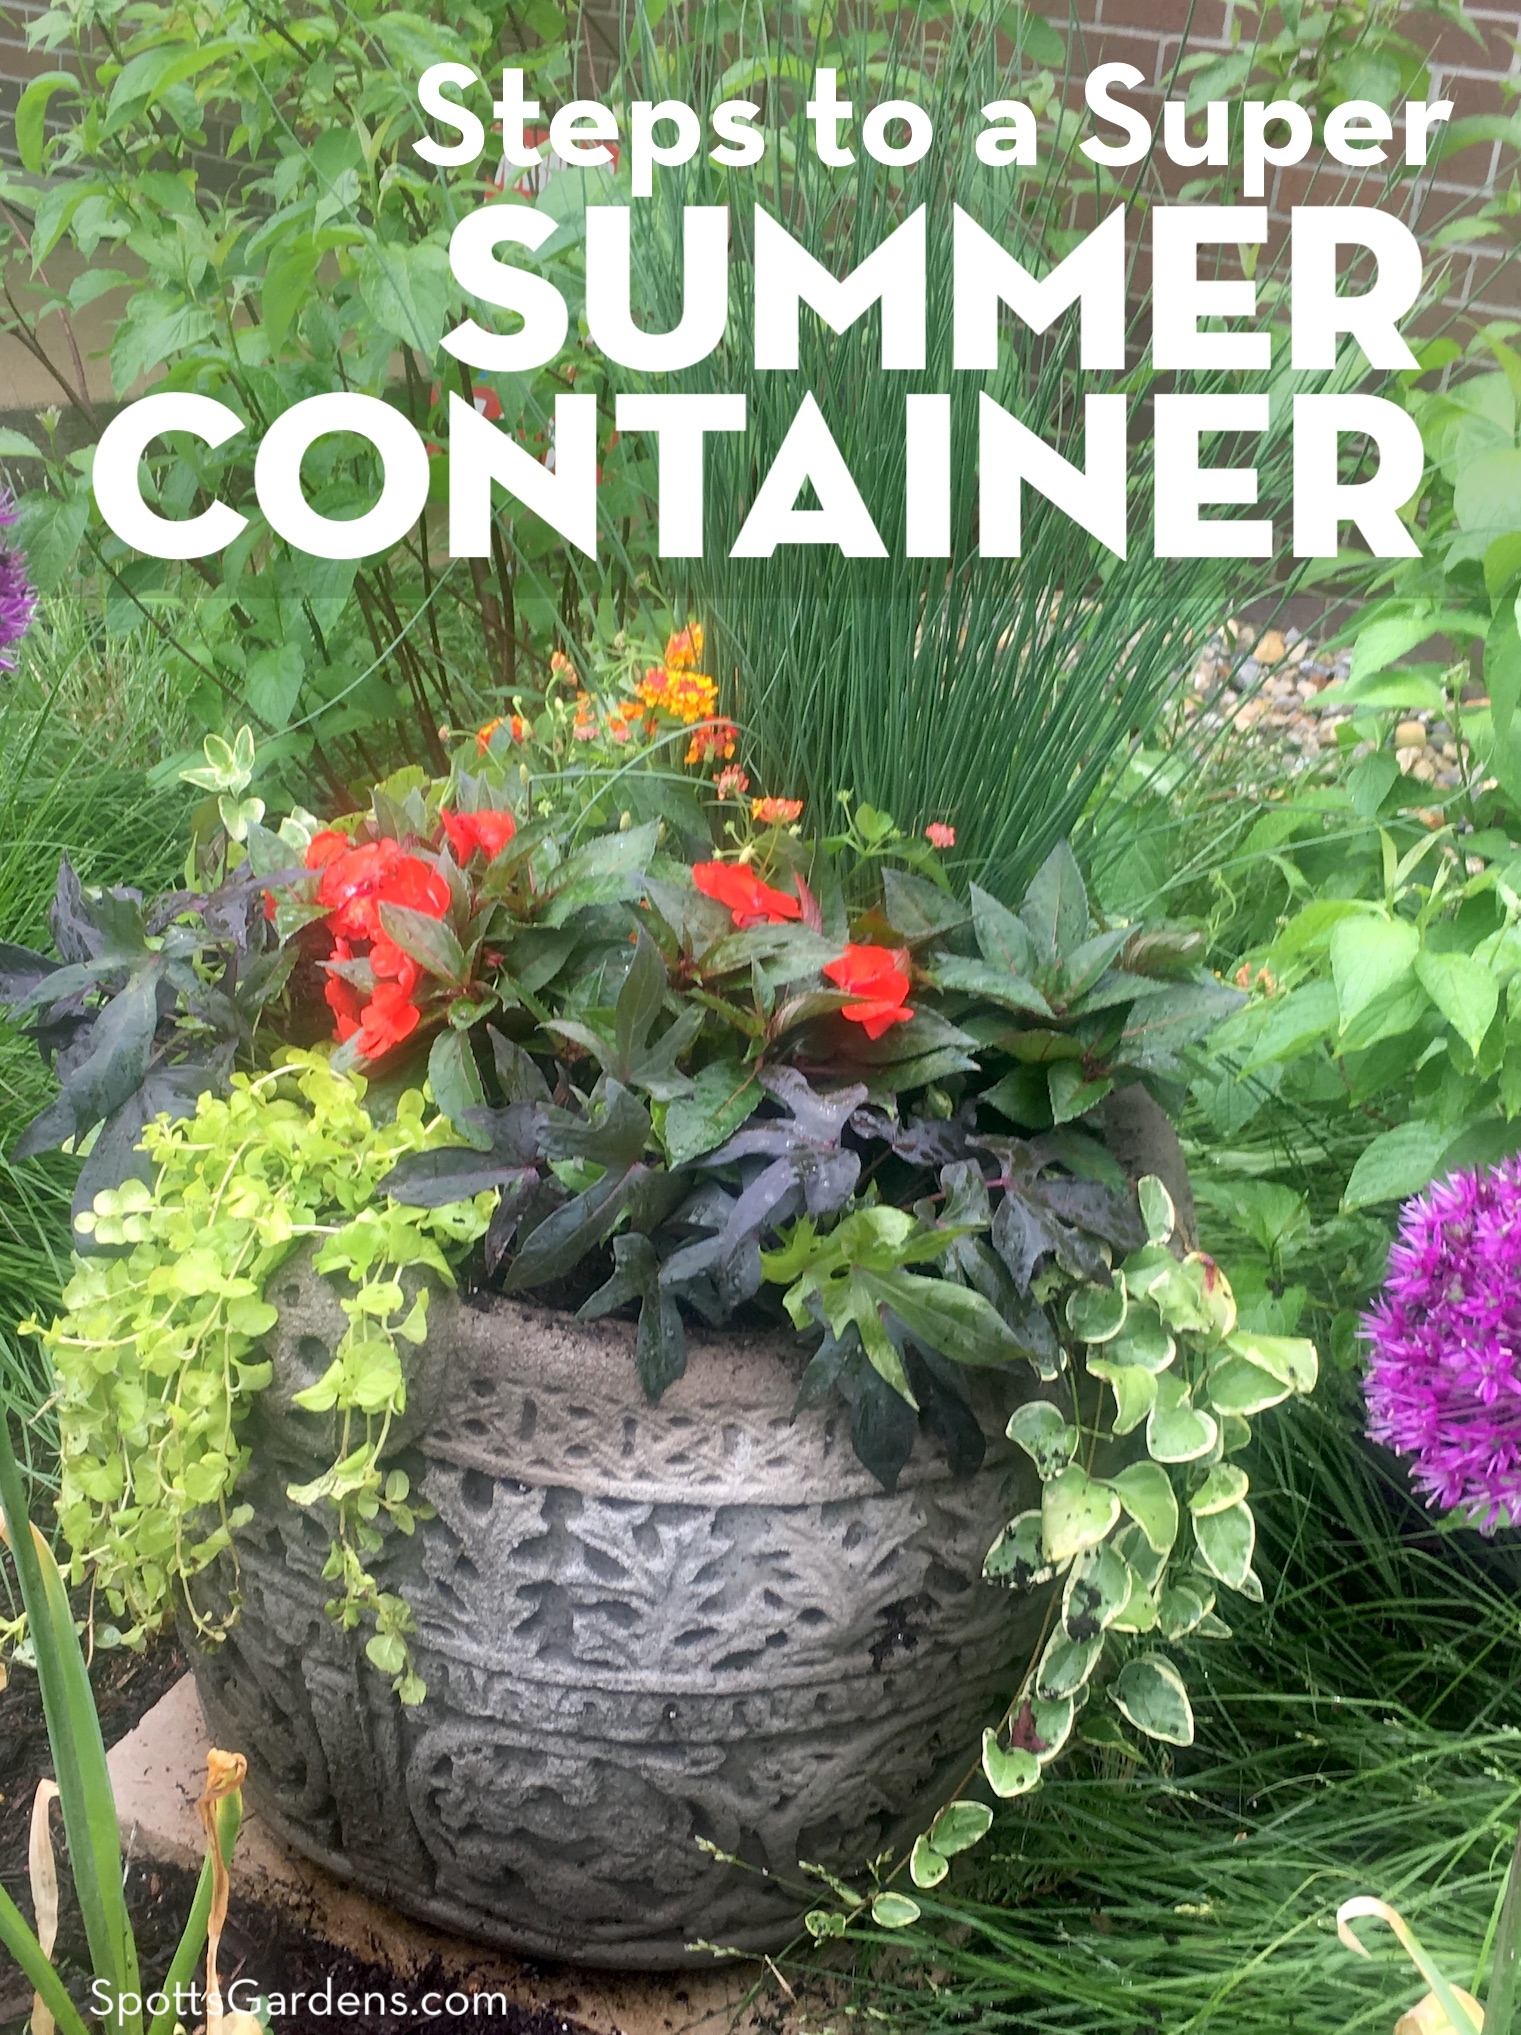 Steps to a Super Summer Container